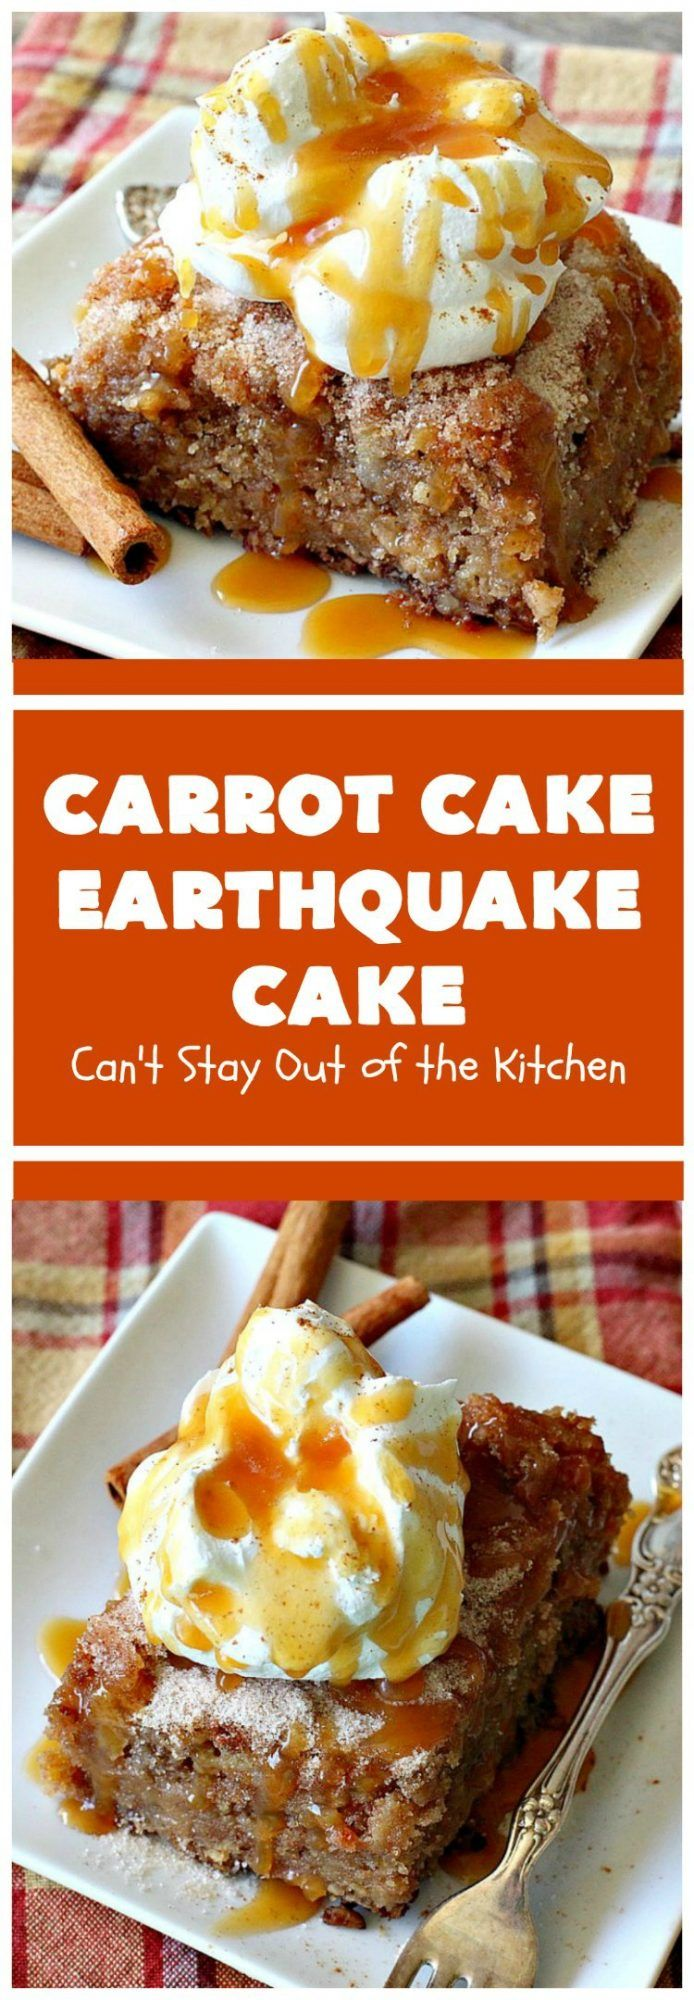 Red Velvet Earthquake Cake Carrot Cake Earthquake Cake | Can't Stay Out of the Kitchen | this fantastic is rich, decadent & divine! It's layered with vanilla chips & uses a boxed mix. Then it has a icing layer that sinks into the while baking. The explosion causes an earthquake! Amazing dessert for company or